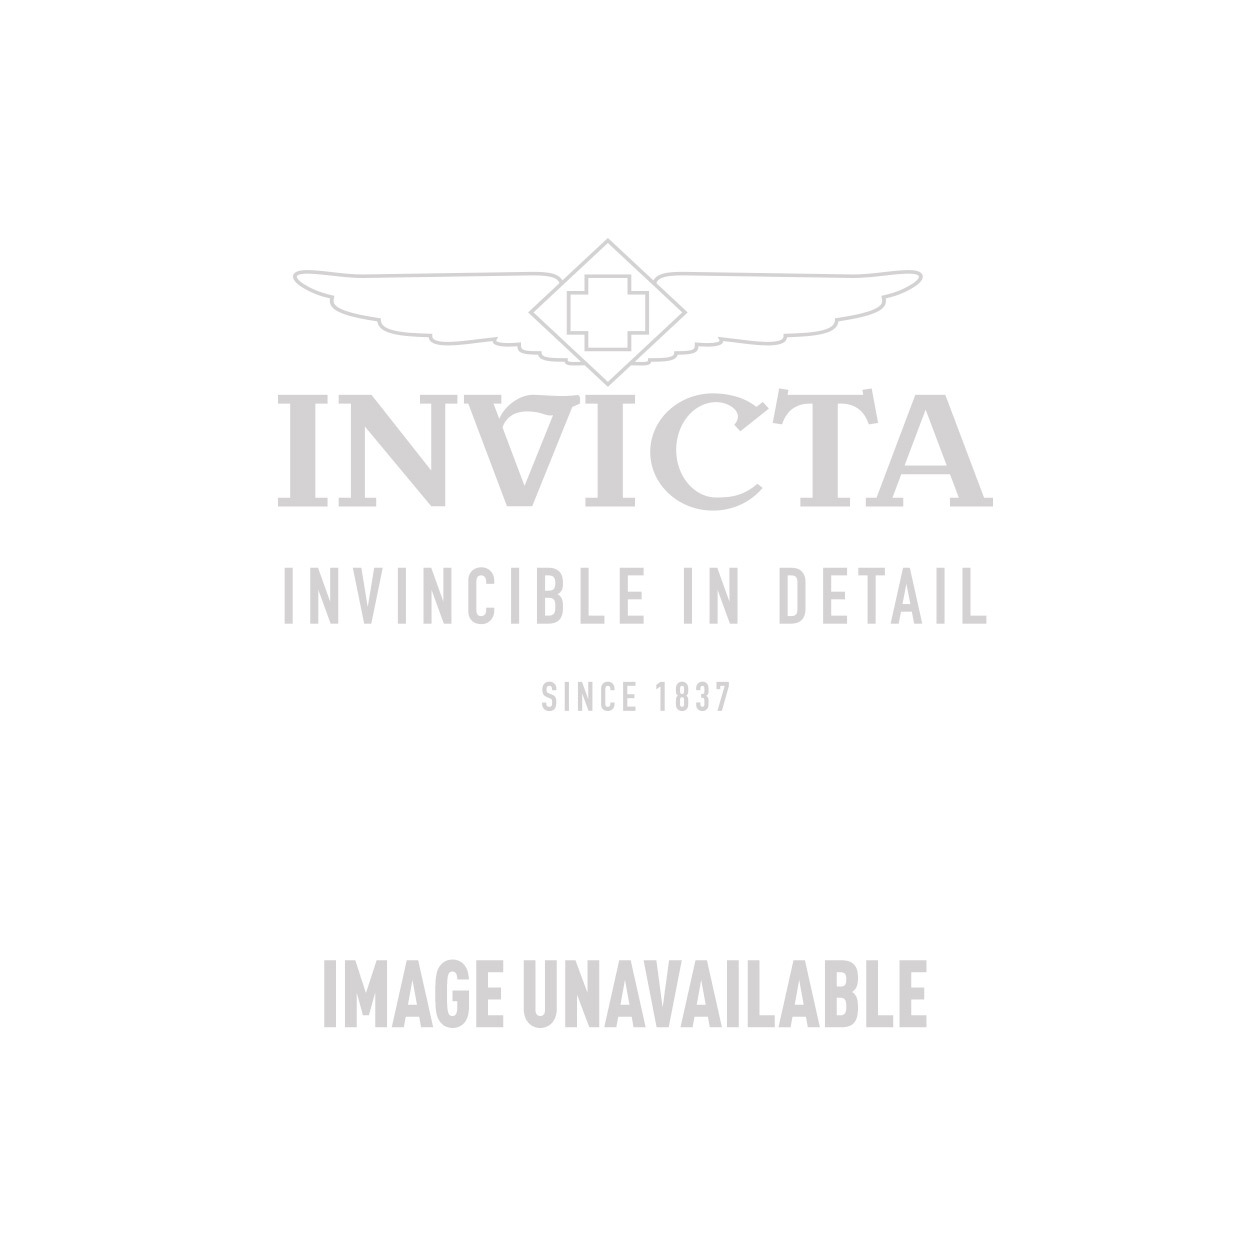 Invicta Russian Diver Mechanical Watch - Rose Gold case with Rose Gold, Black tone Stainless Steel, Polyurethane band - Model 1090